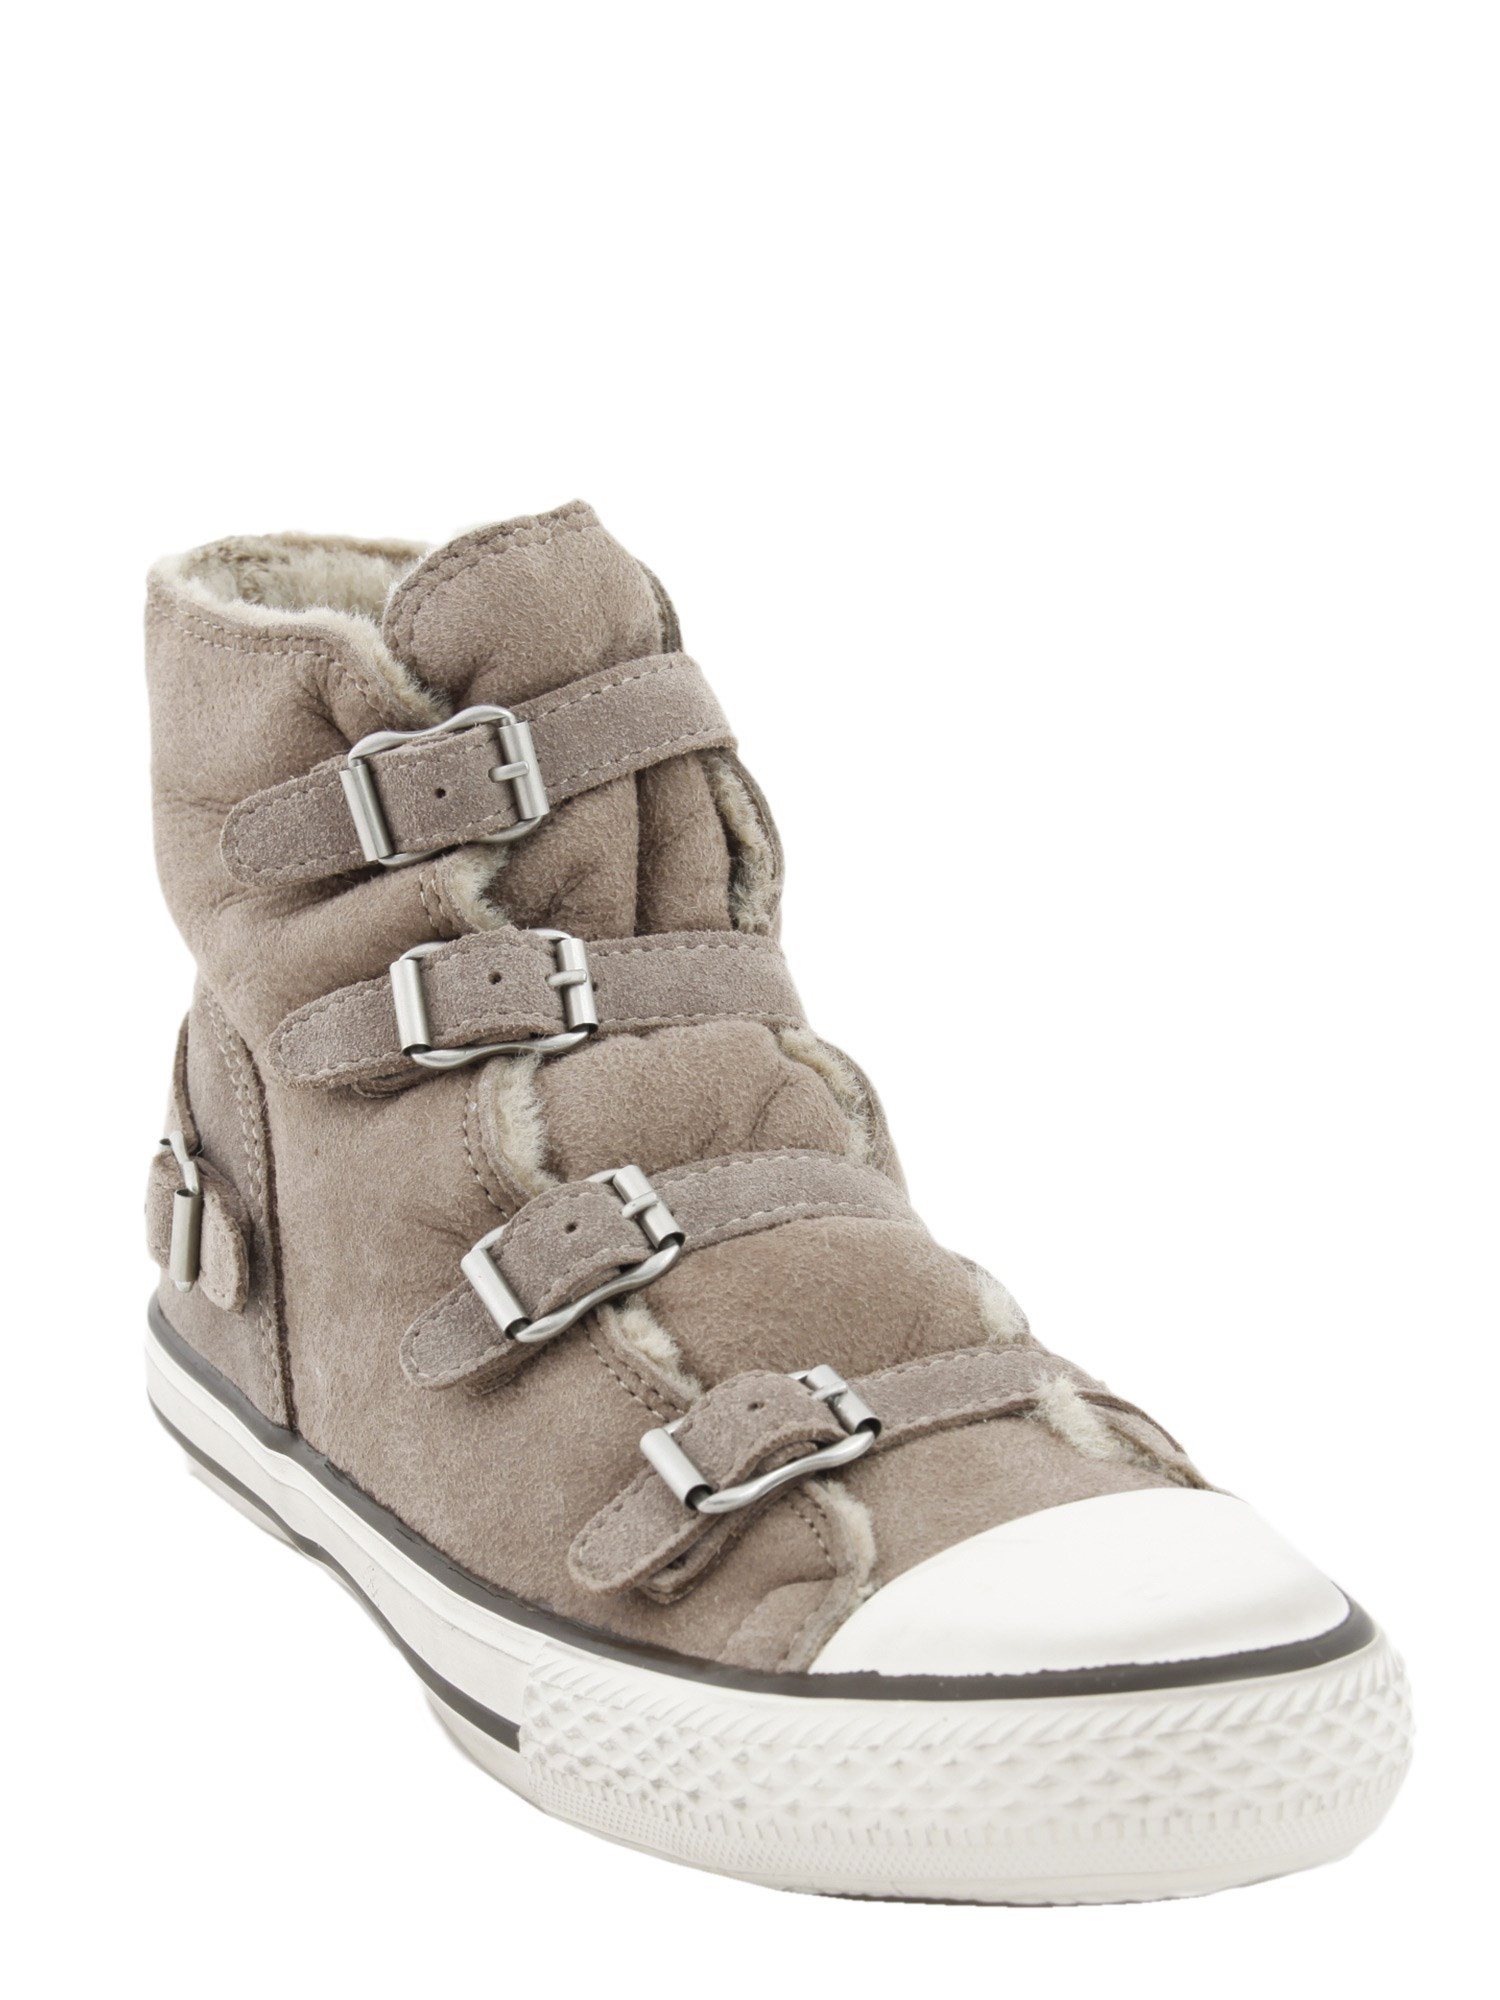 ash virginy high top sneakers in beige lyst. Black Bedroom Furniture Sets. Home Design Ideas